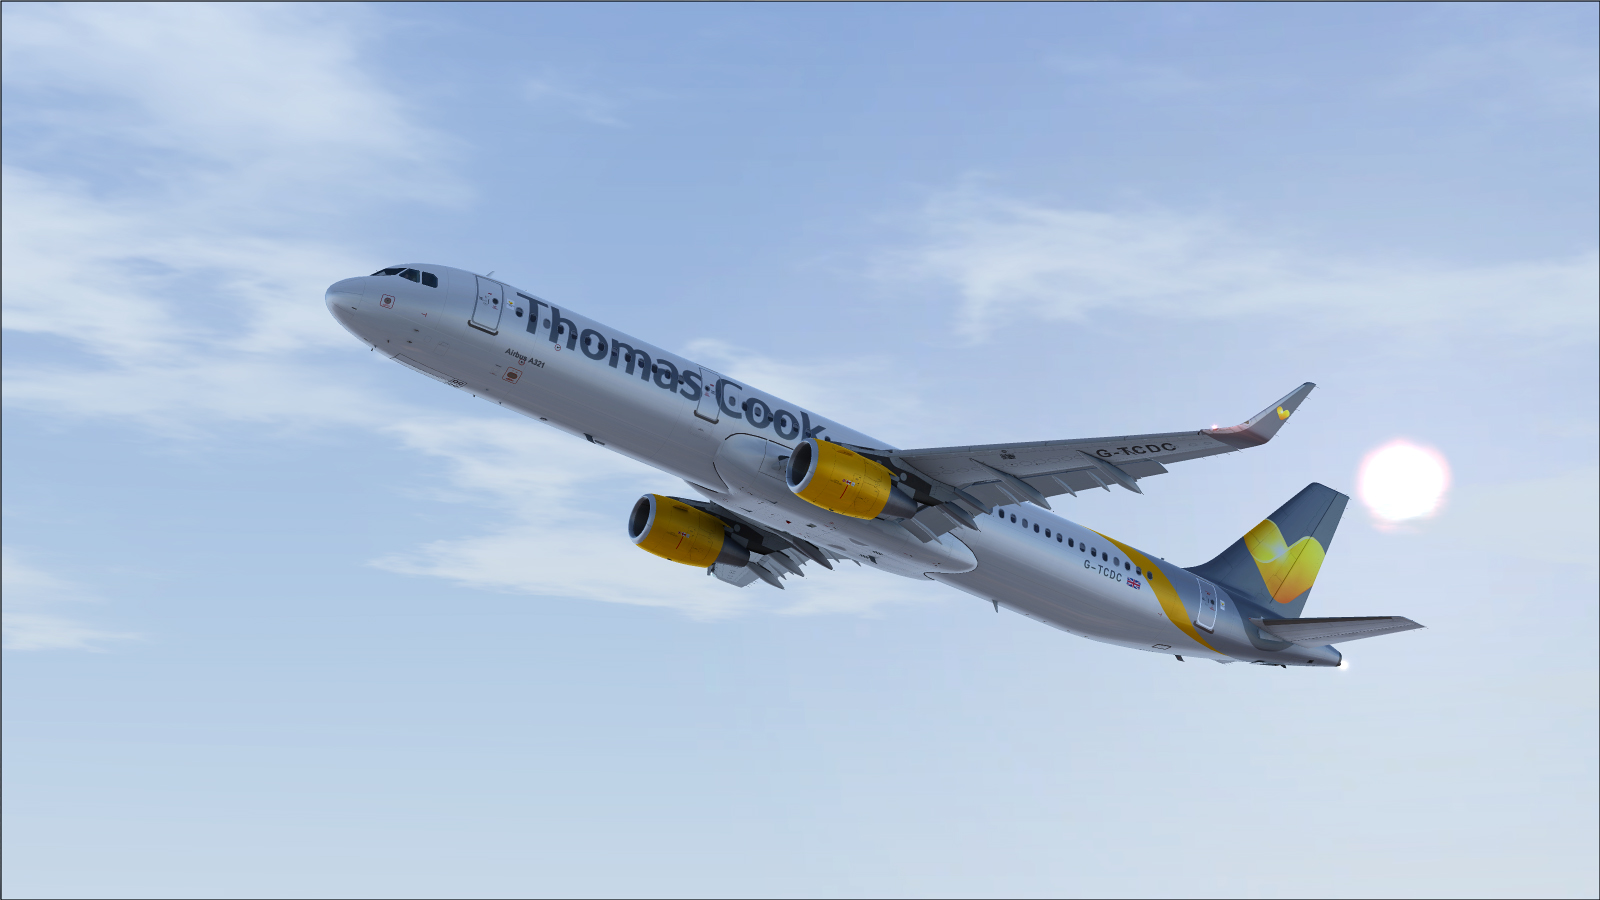 Airbus A321 CFM Sharklet Thomas Cook Sunny Heart G-TCDC - Airbus